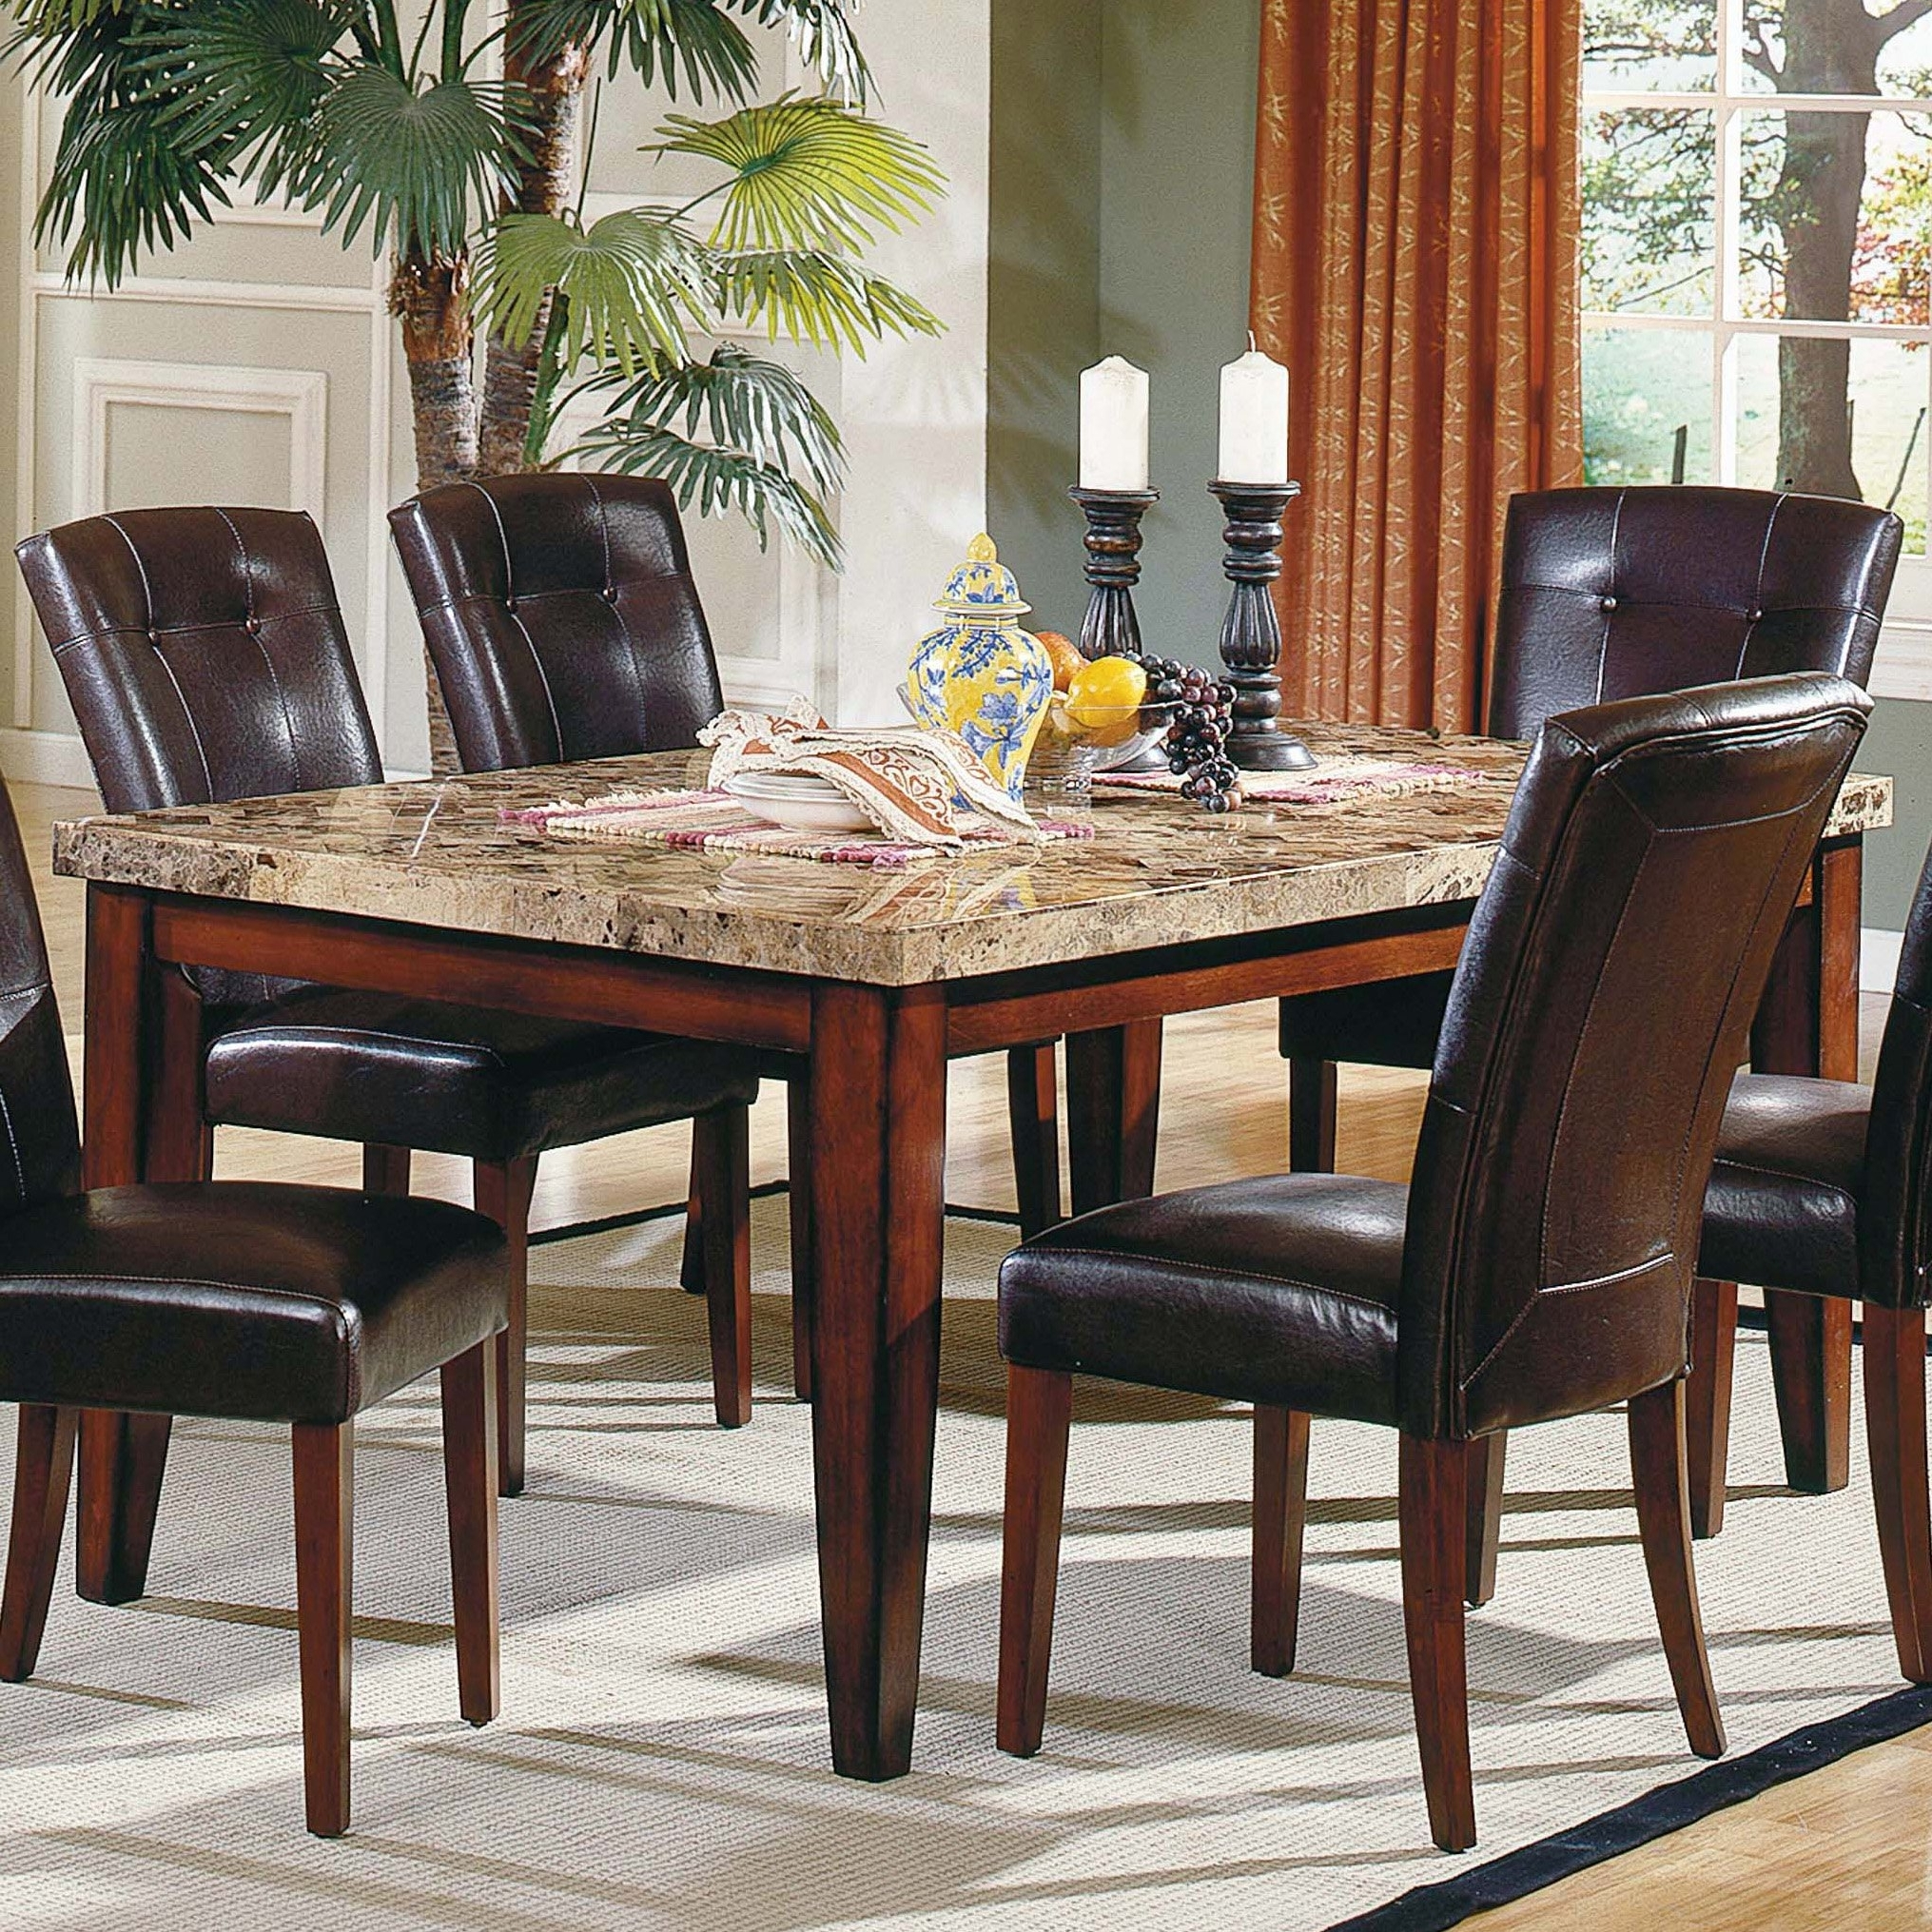 Rectangular Dining Tables Sets Throughout Most Current Steve Silver Montibello 5 Piece Marble Top Rectangular Dining Table (View 6 of 25)